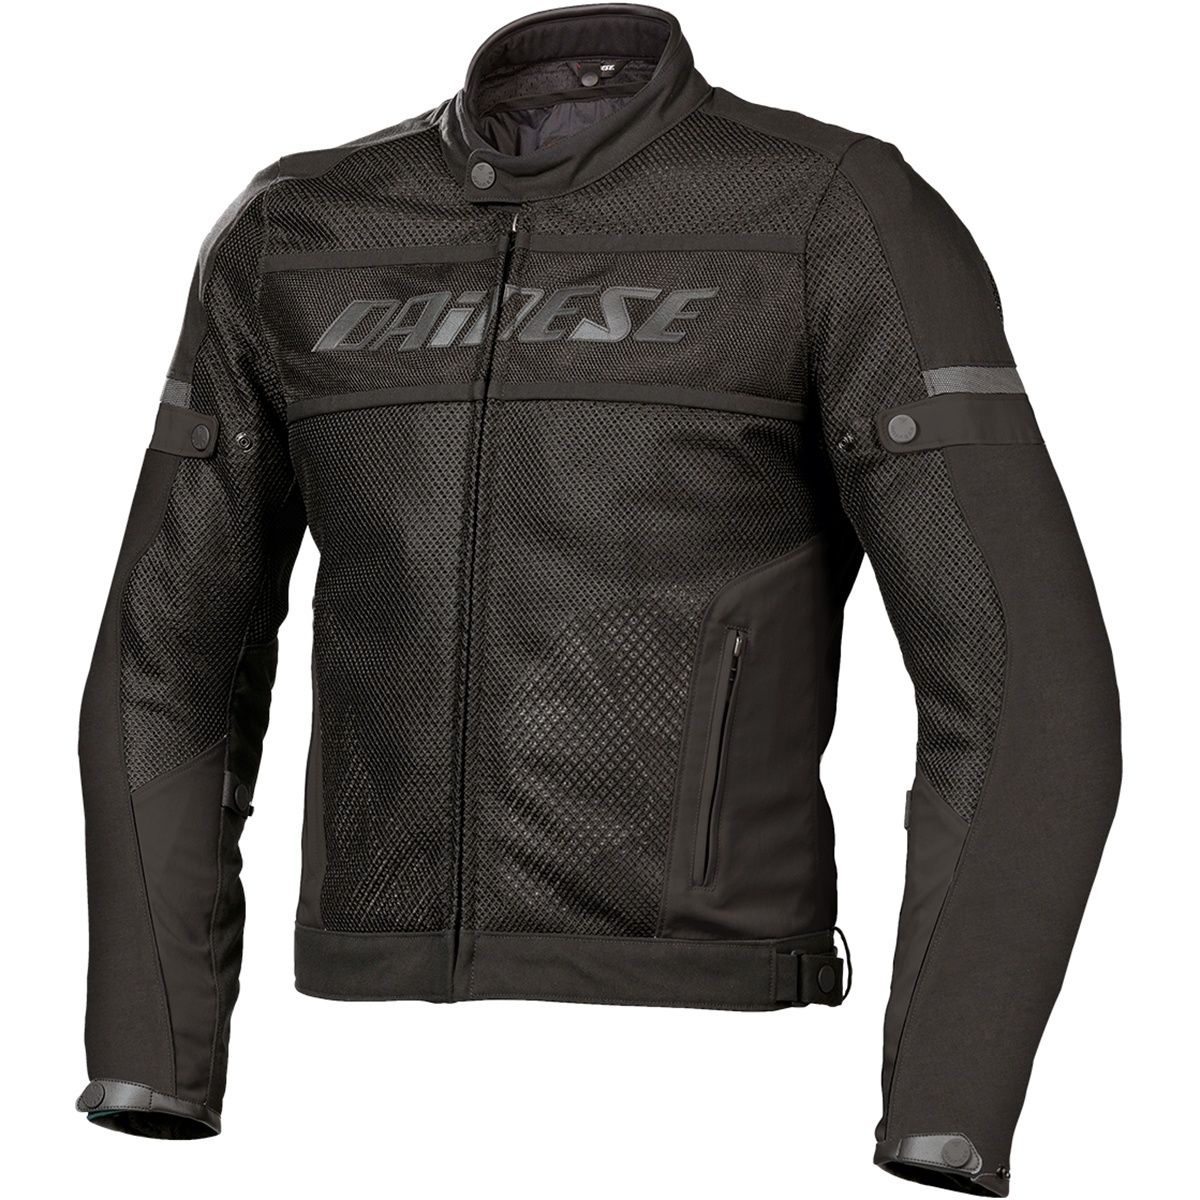 DAINESE AirFrame Tex N Motorcycle, Motorcycle gear, Jackets